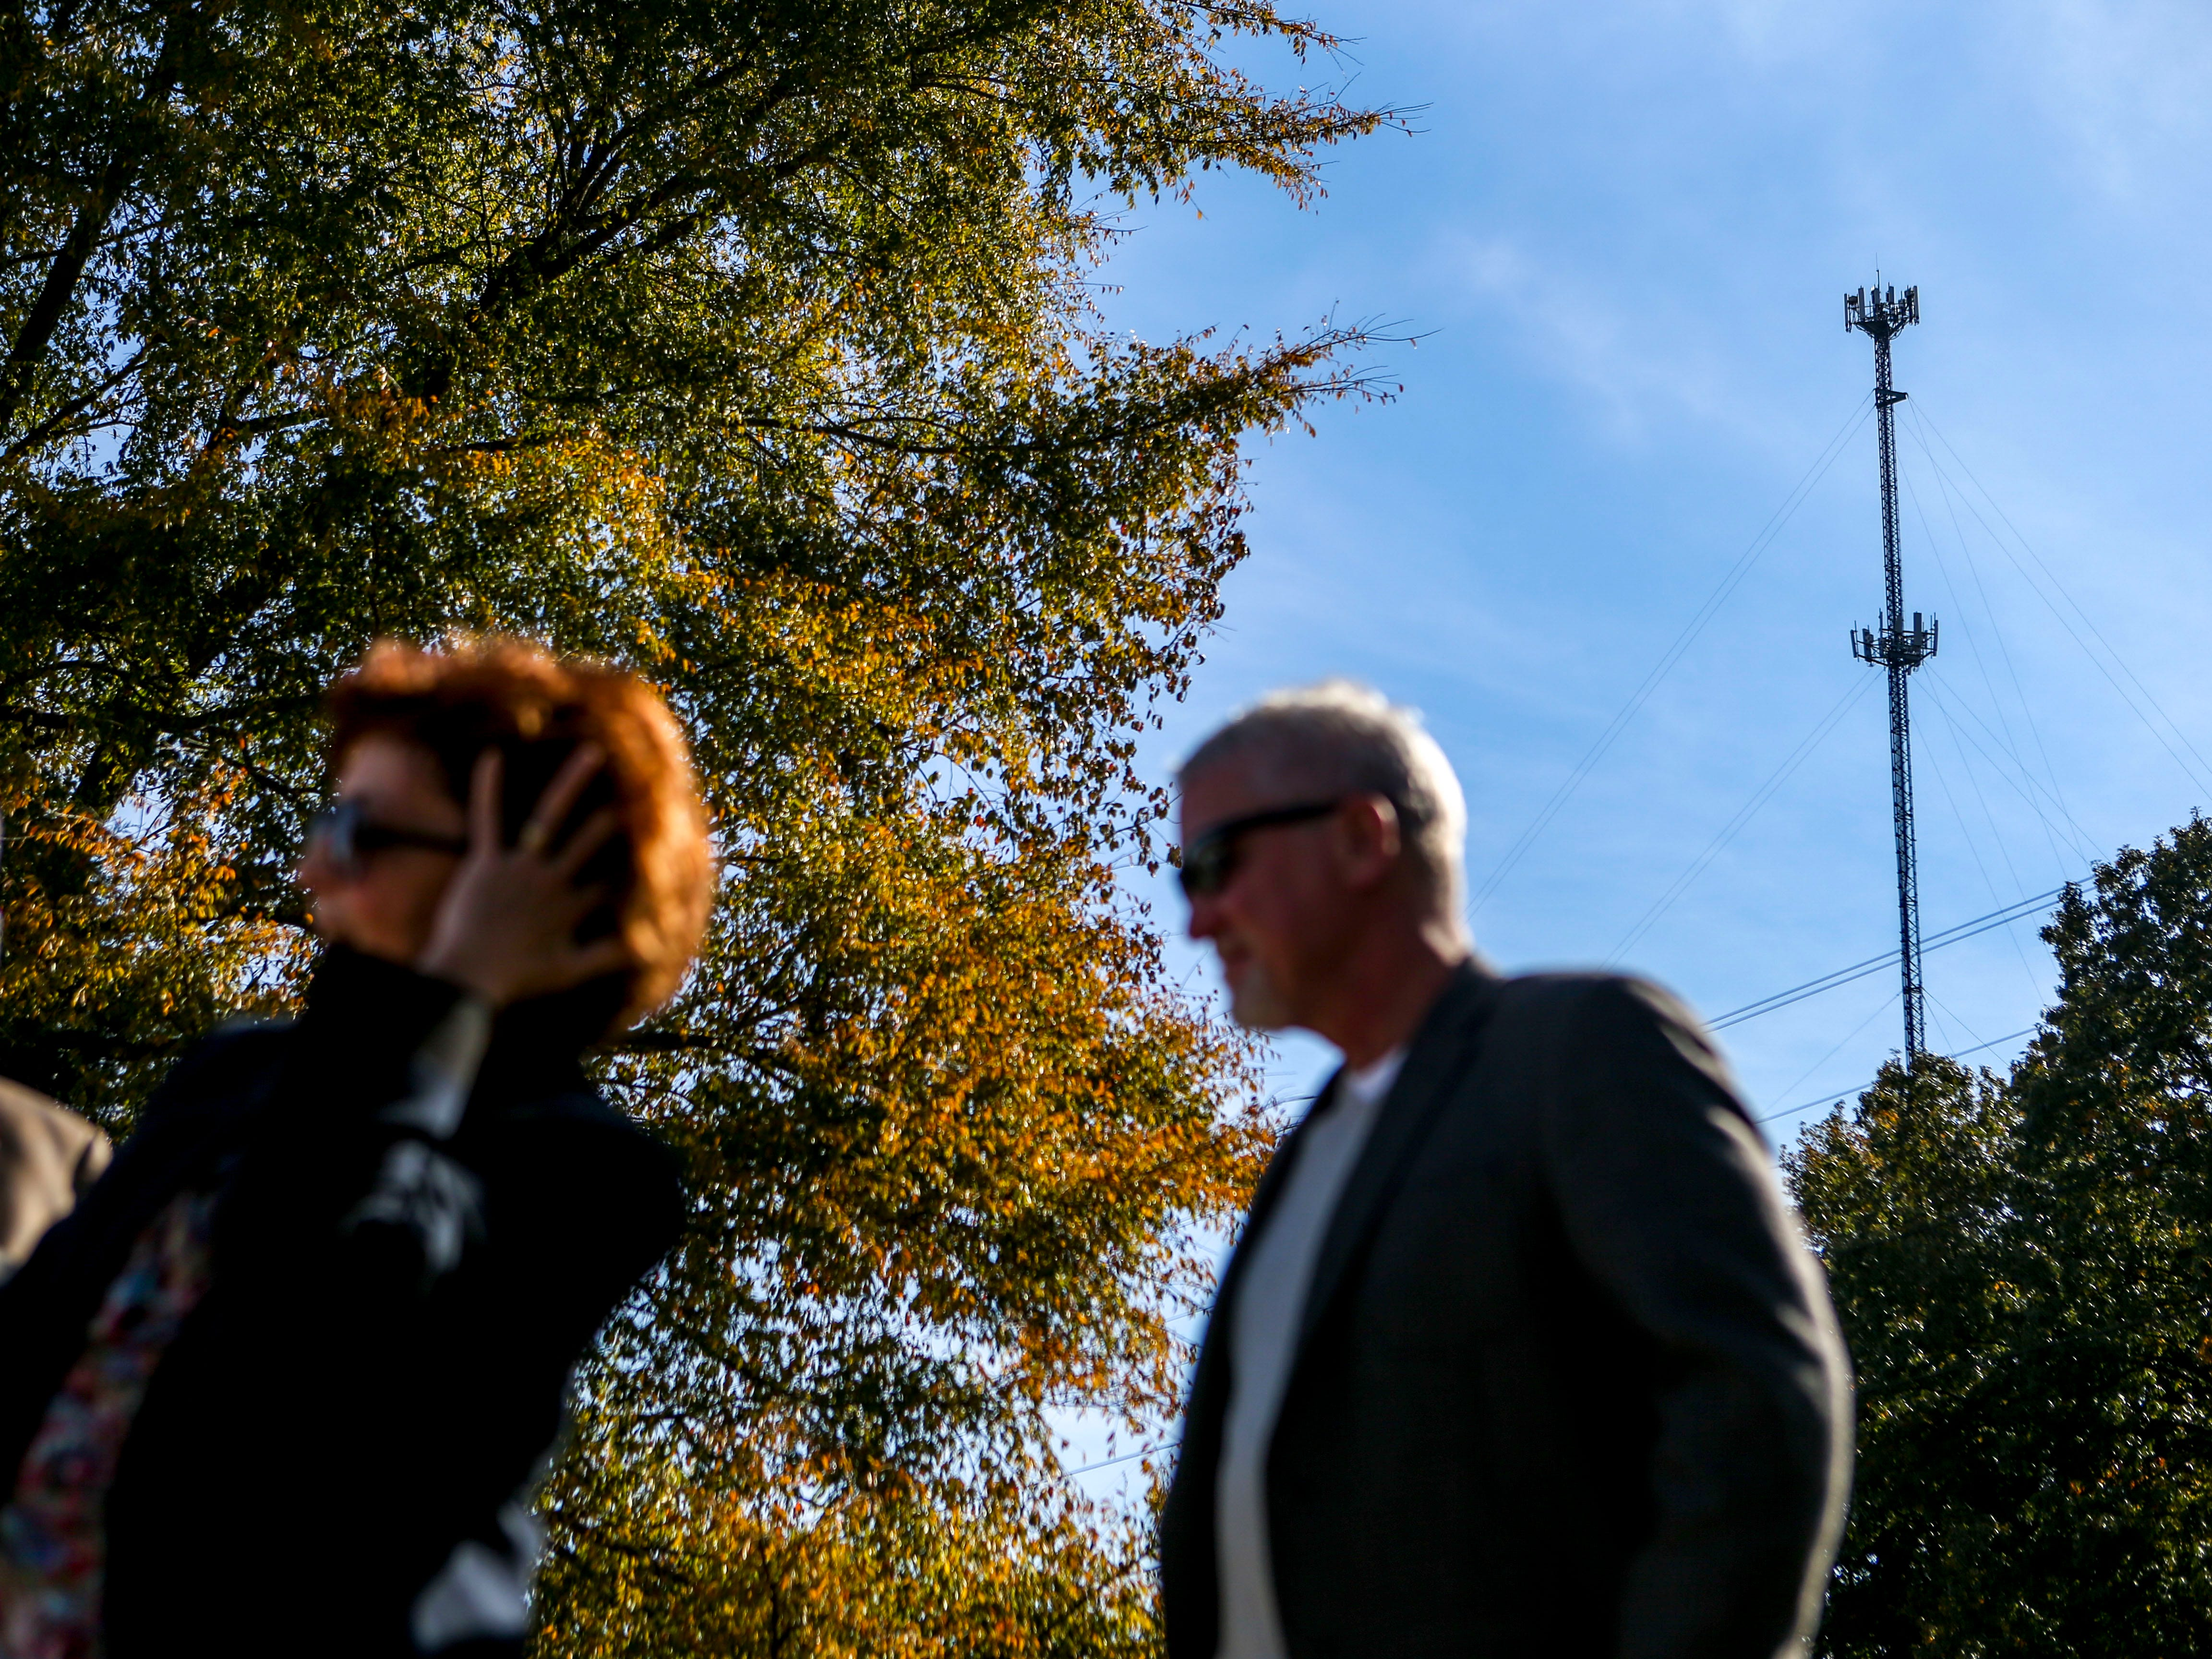 An AT&T cellular tower looms in the distance during a ceremonial opening for the expansion of wireless broadband coverage through AT&T cell towers at 4567 Brownsville Hwy in Denmark, Tenn., on Tuesday, Oct. 30, 2018.